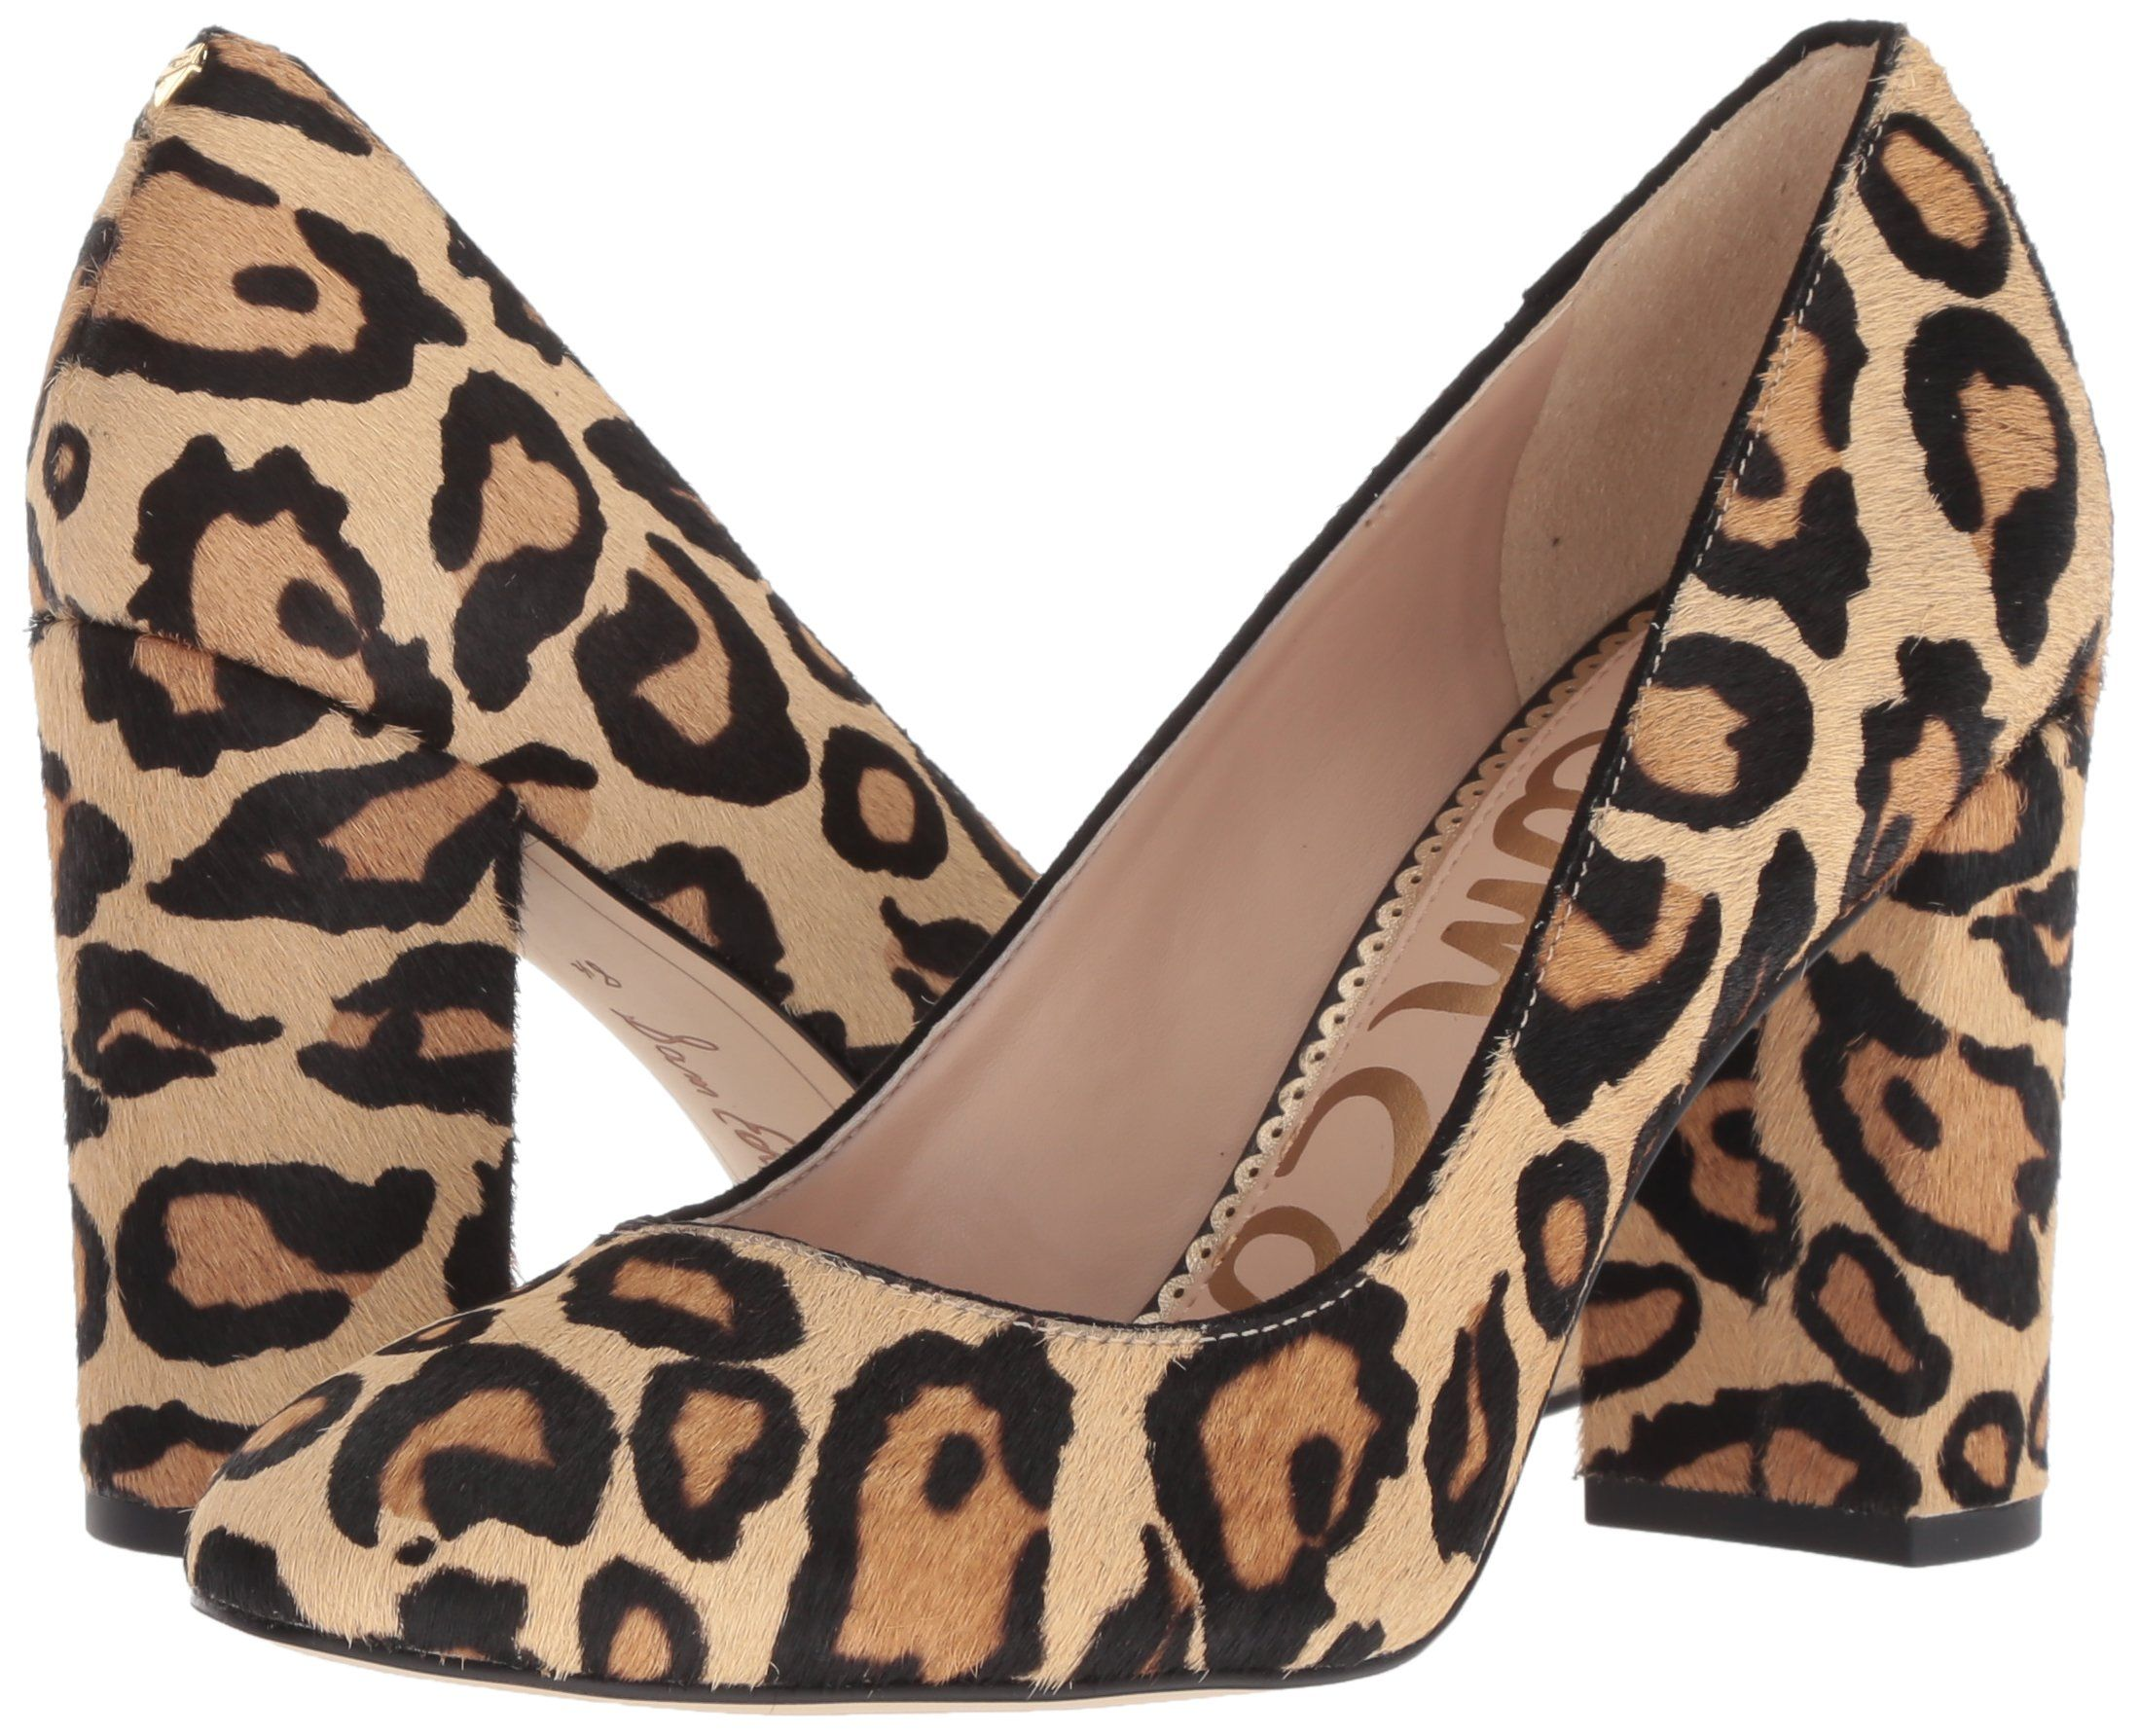 21bdc31a4 Sam Edelman Womens Stillson Pump New Nude Leopard 9 M US    Details can be  found by clicking on the image. (This is an affiliate link)